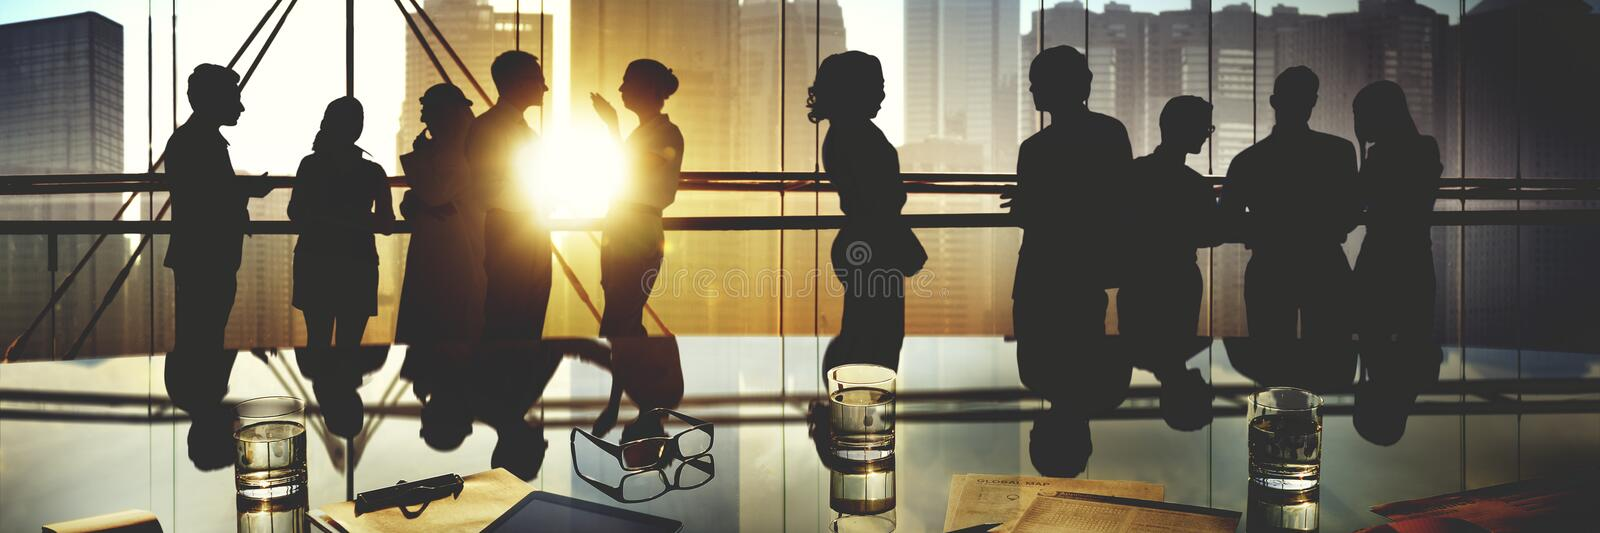 Business Office People Working Meeting Discussion Concept stock photography